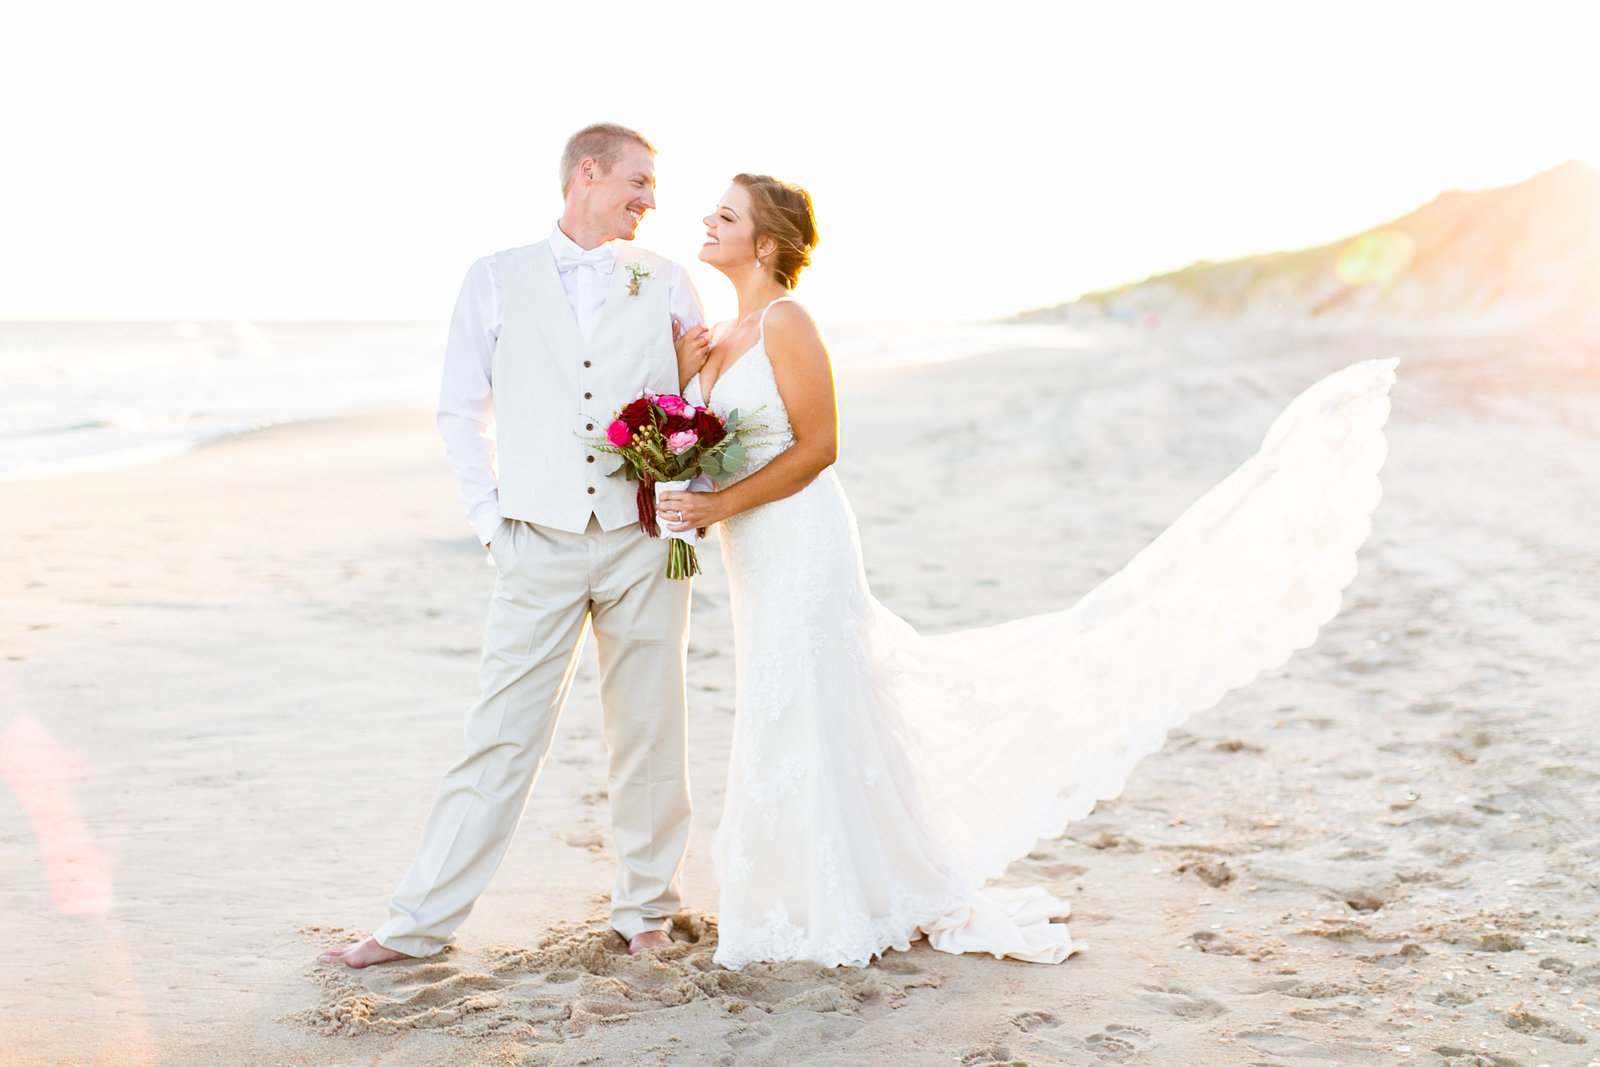 niki-david-hatteras-wedding-photo-amanda-hedgepeth-82